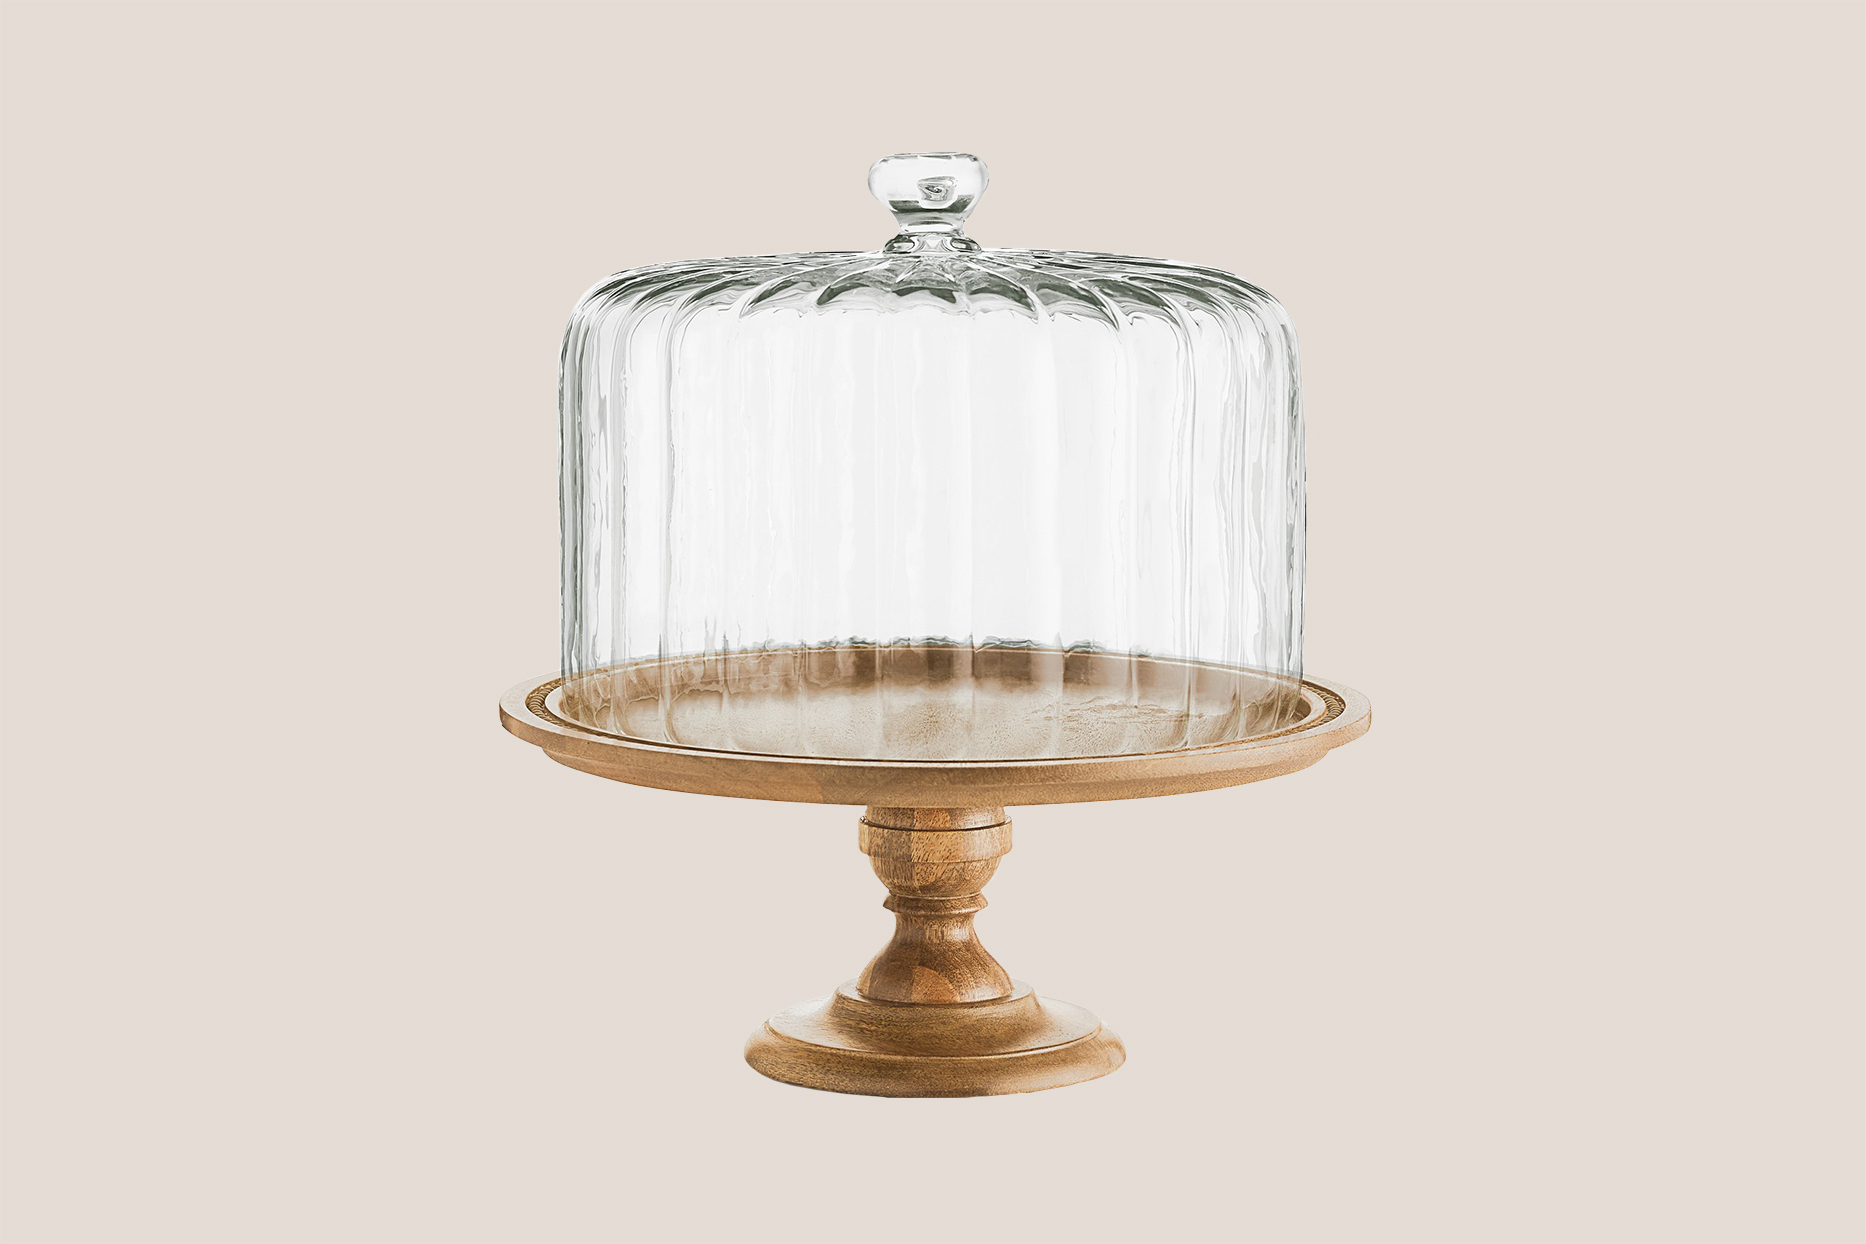 martha stewart collection wooden base cake dome with glass top